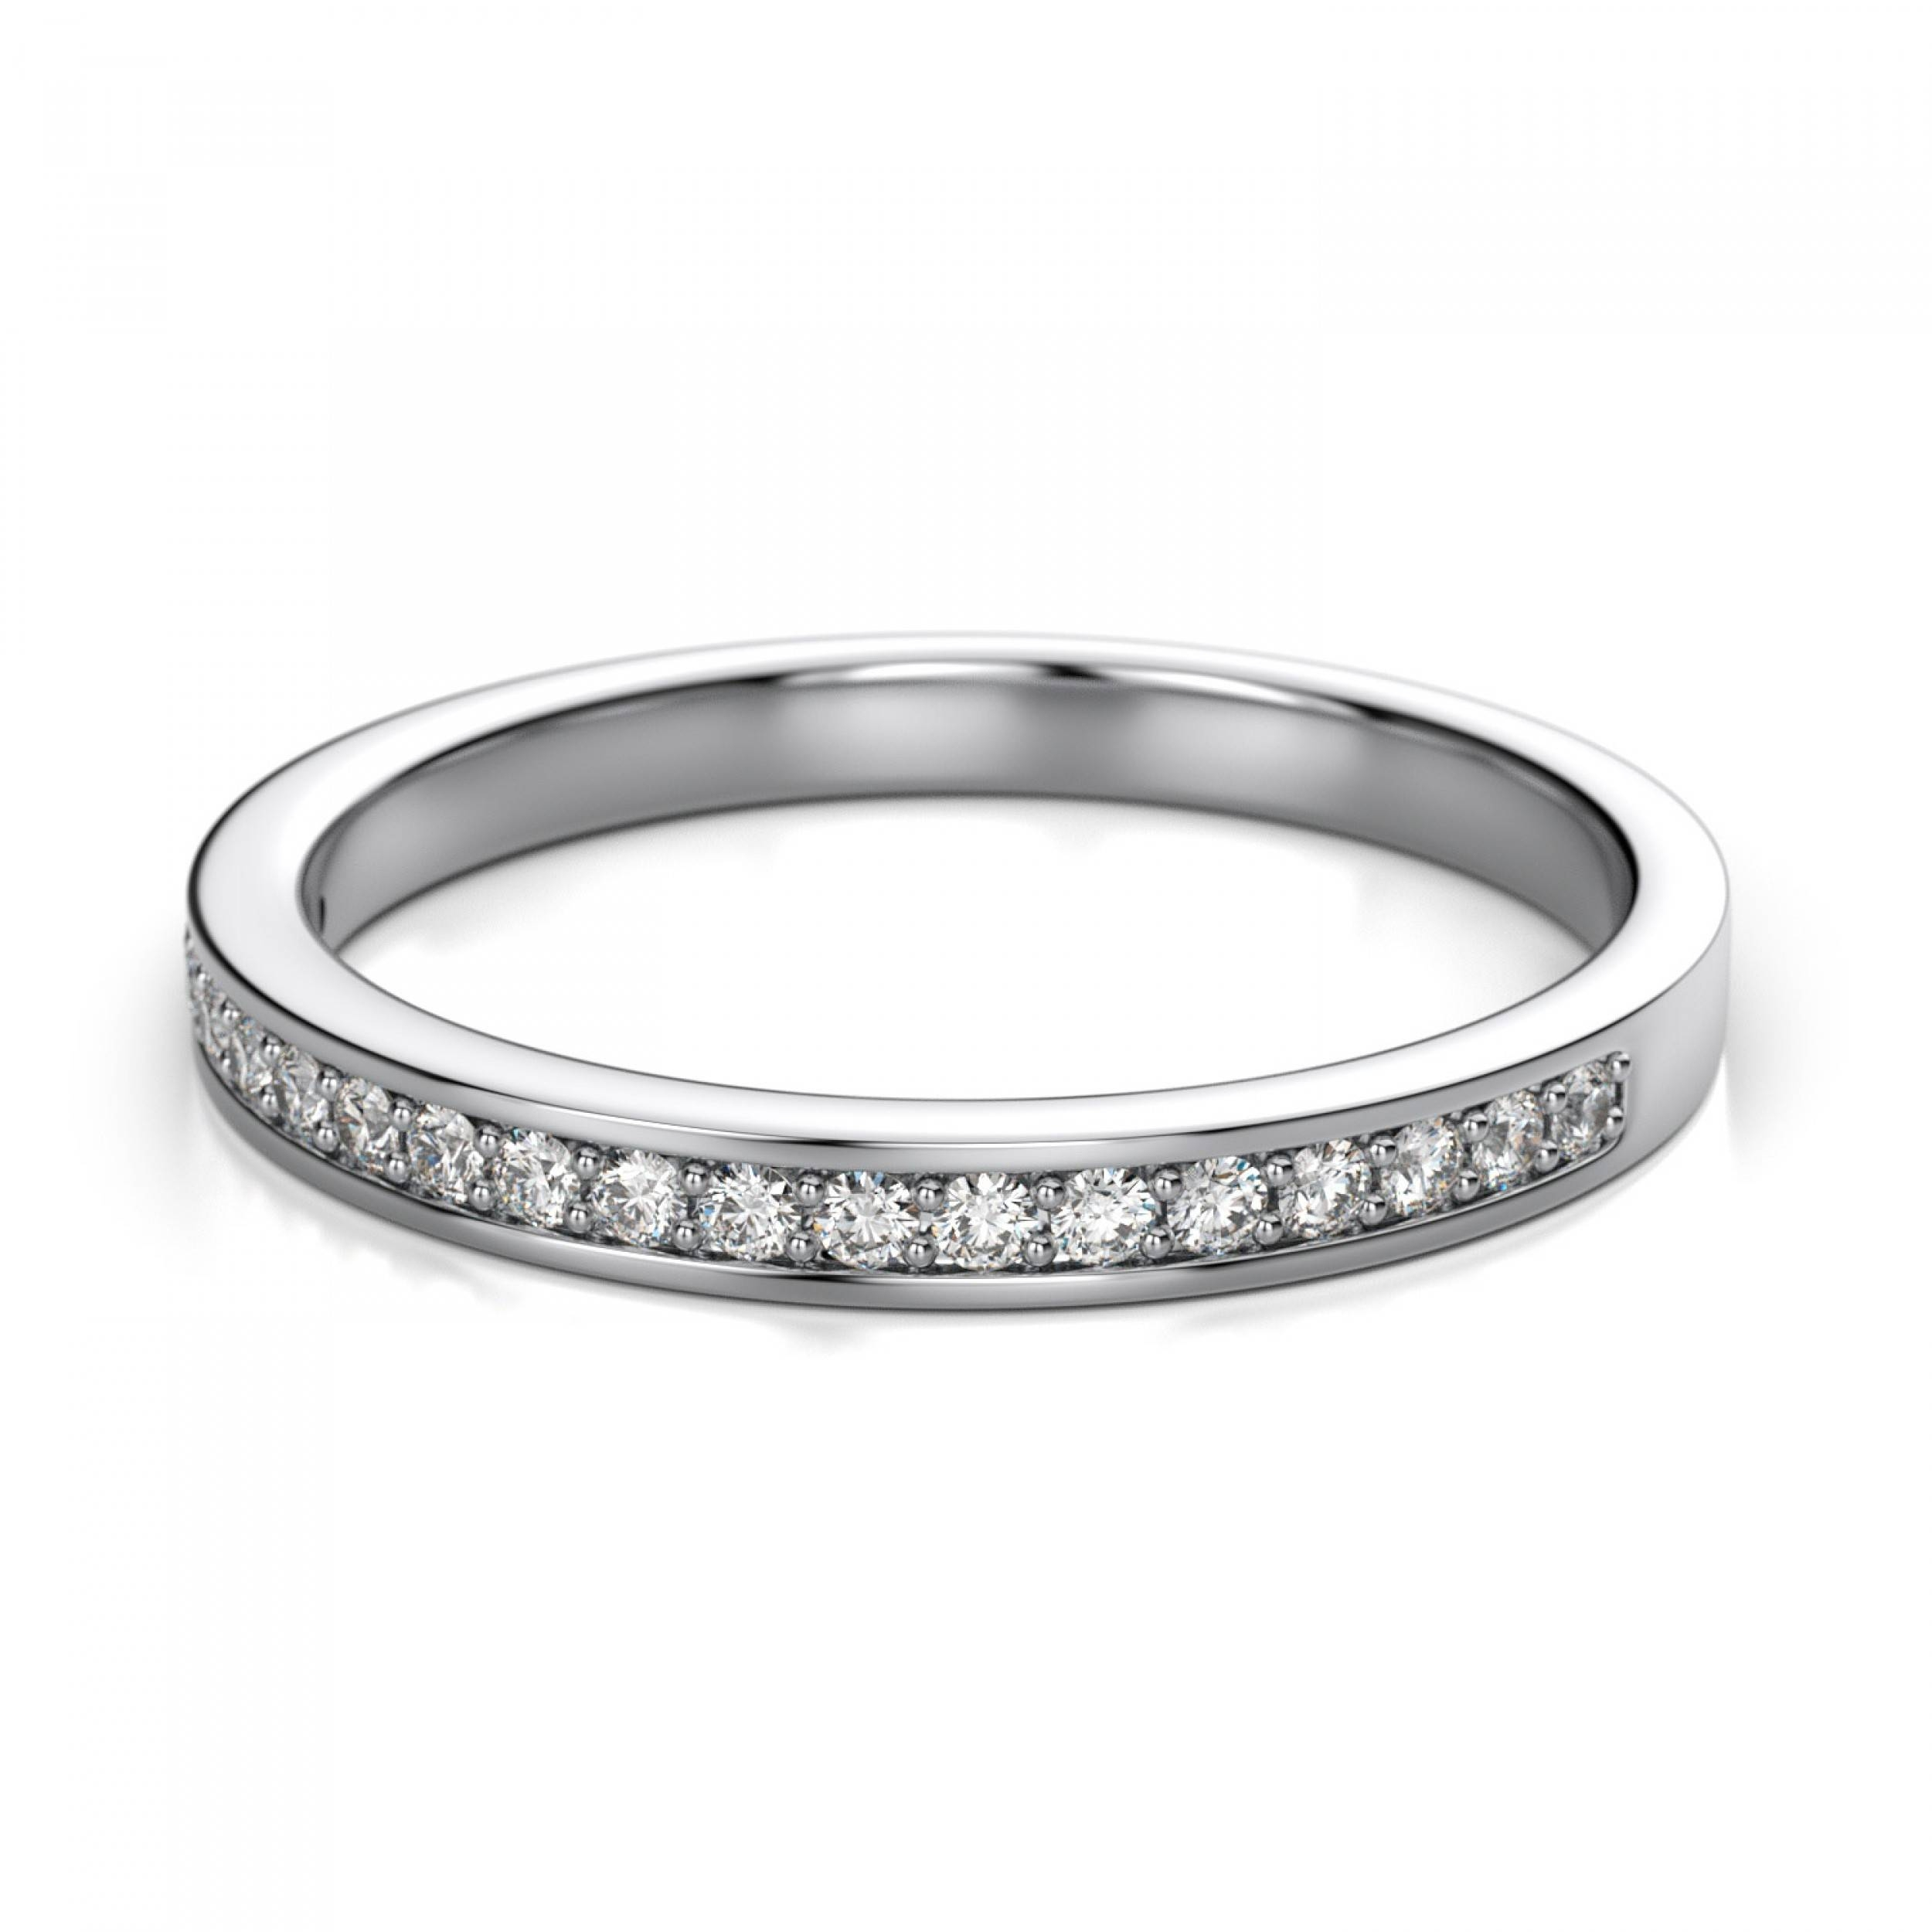 Wedding Rings : Simple Wedding Band Sets Mens Wedding Bands With Regard To Most Recent Pave Set Diamond Wedding Bands (View 13 of 15)